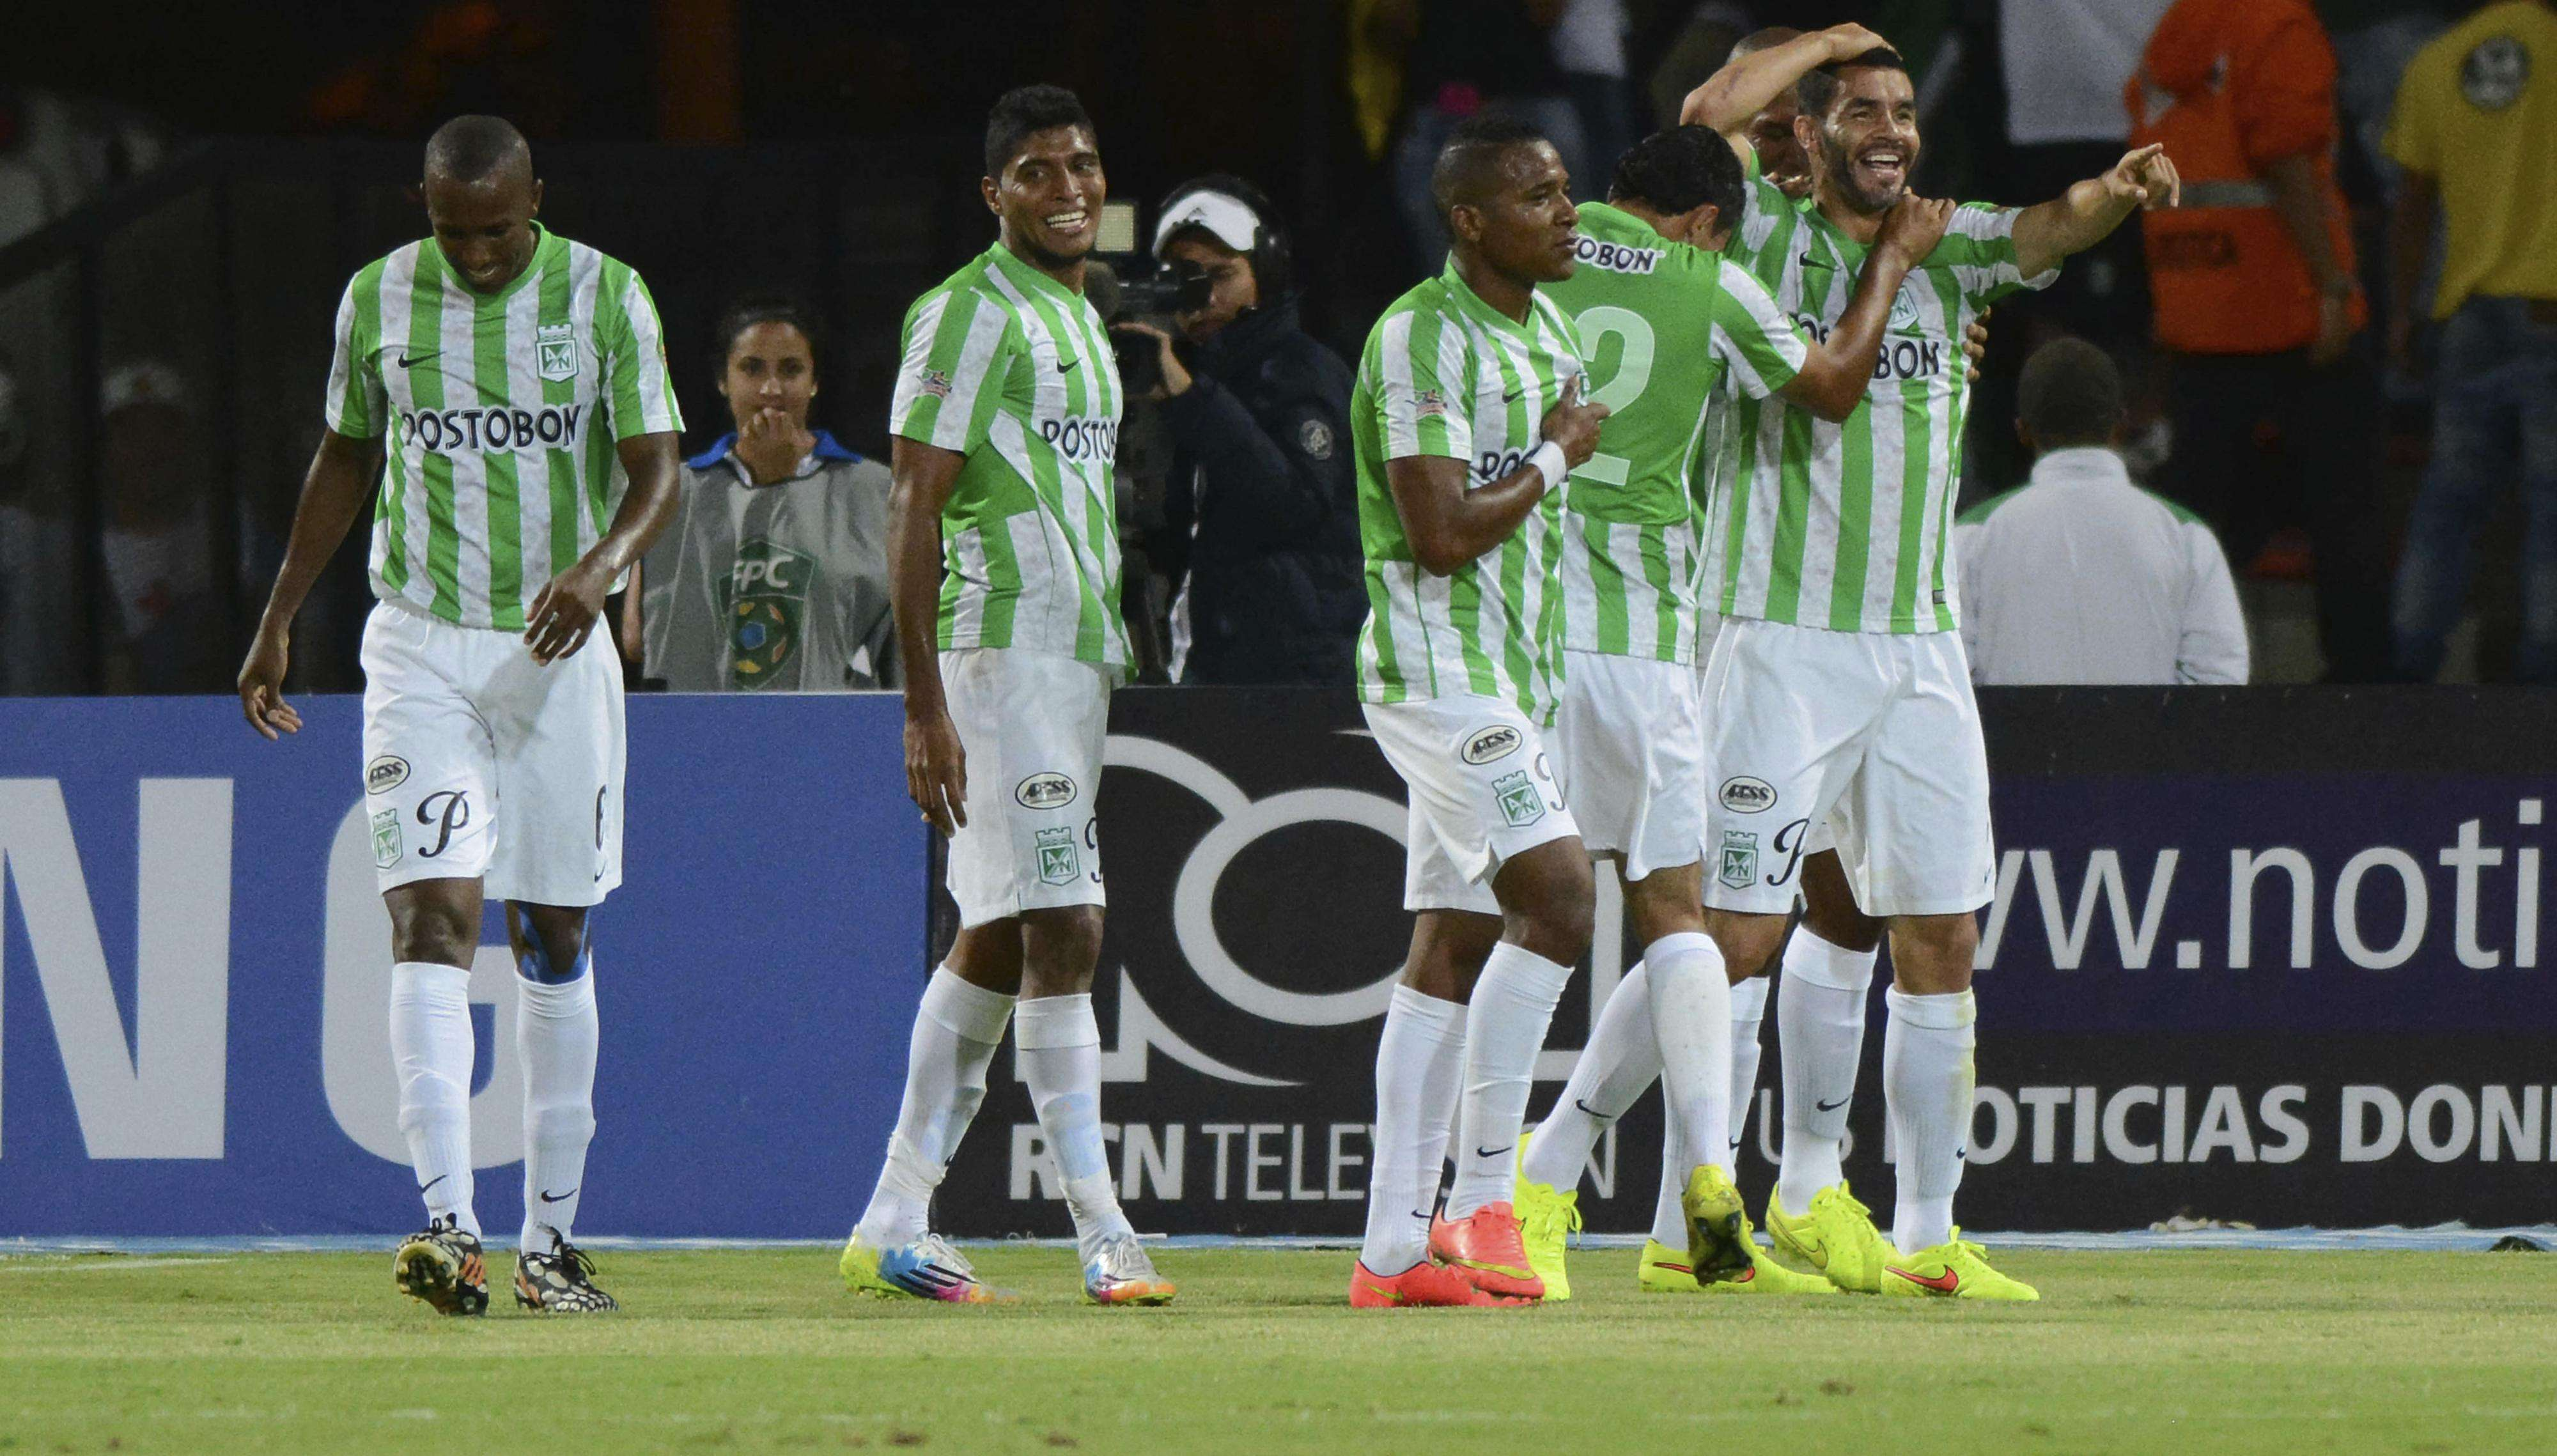 Atlético Nacional. Foto: Getty Images